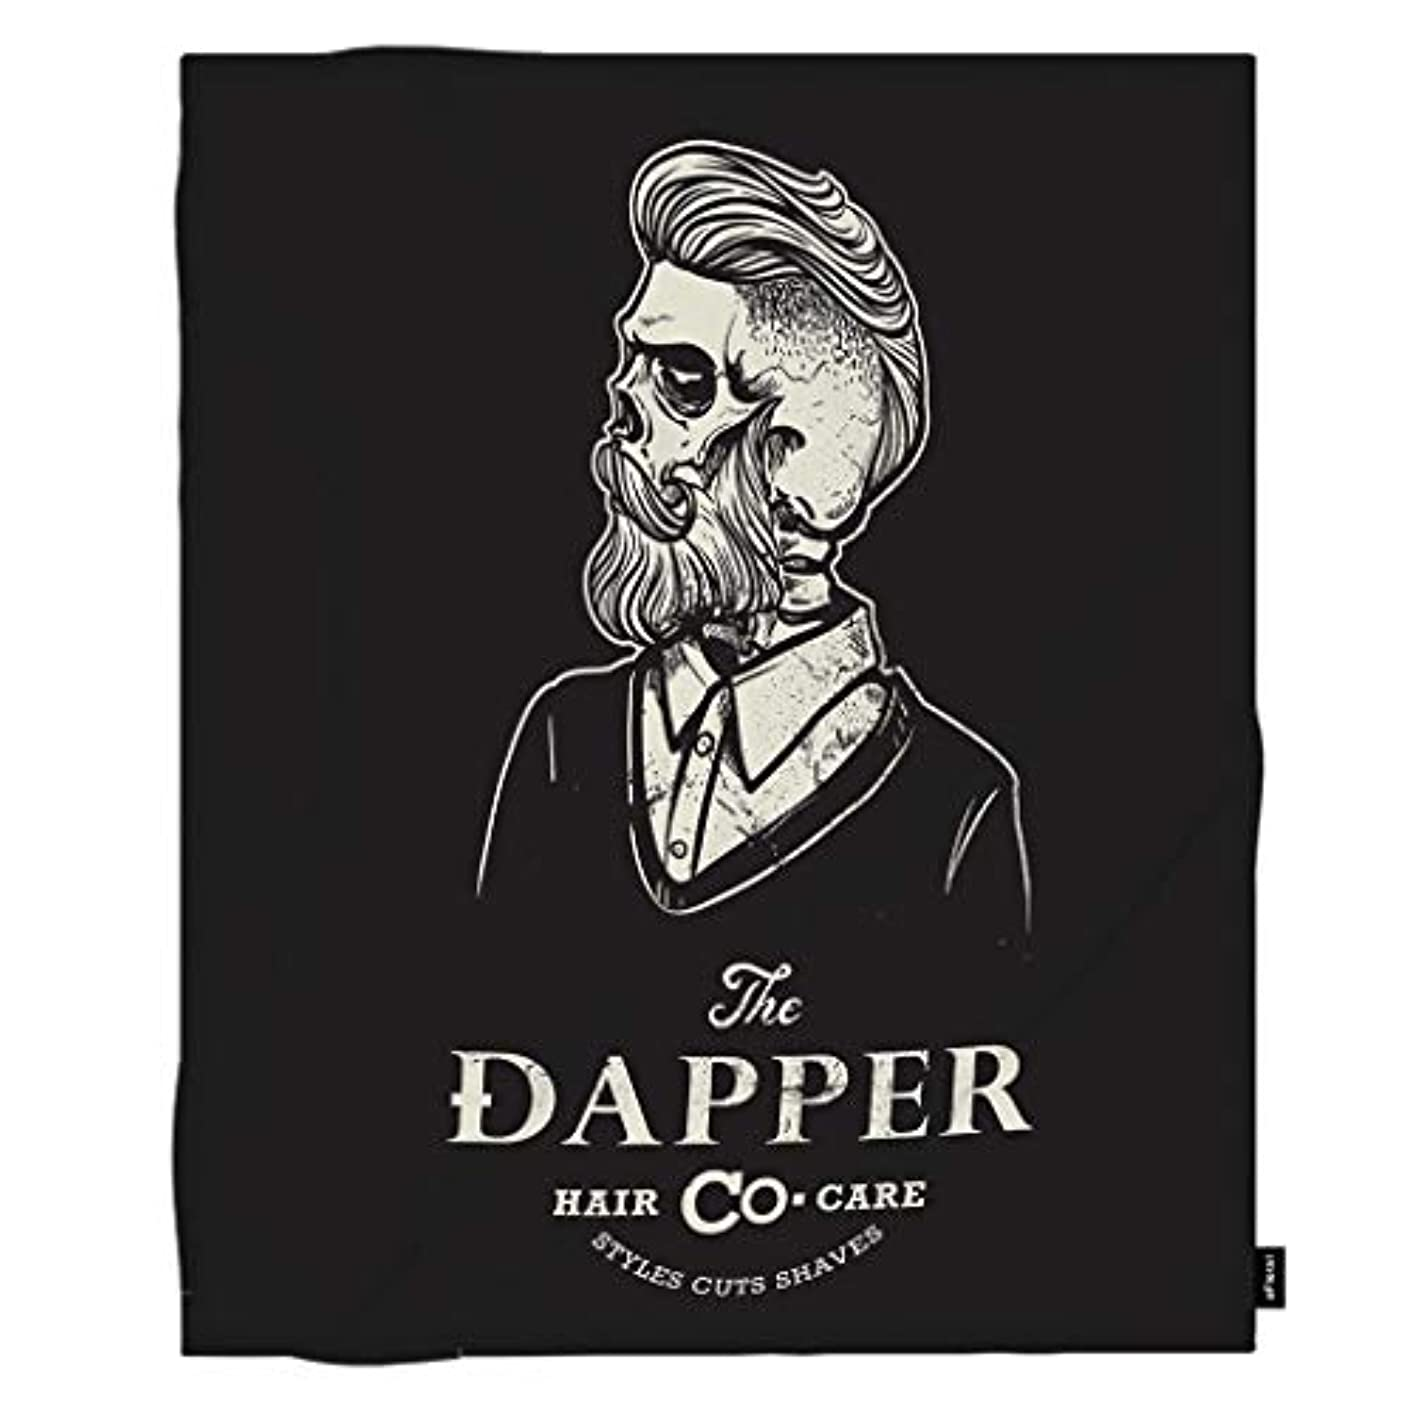 oFloral Hipster Throw Blanket Male Skull Barber Shop Logo Retro Tattoo Print Decorative Soft Warm Cozy Blankets for Baby Toddler Home Decor for Bed Chain Sofa Couch 40x50 Inch